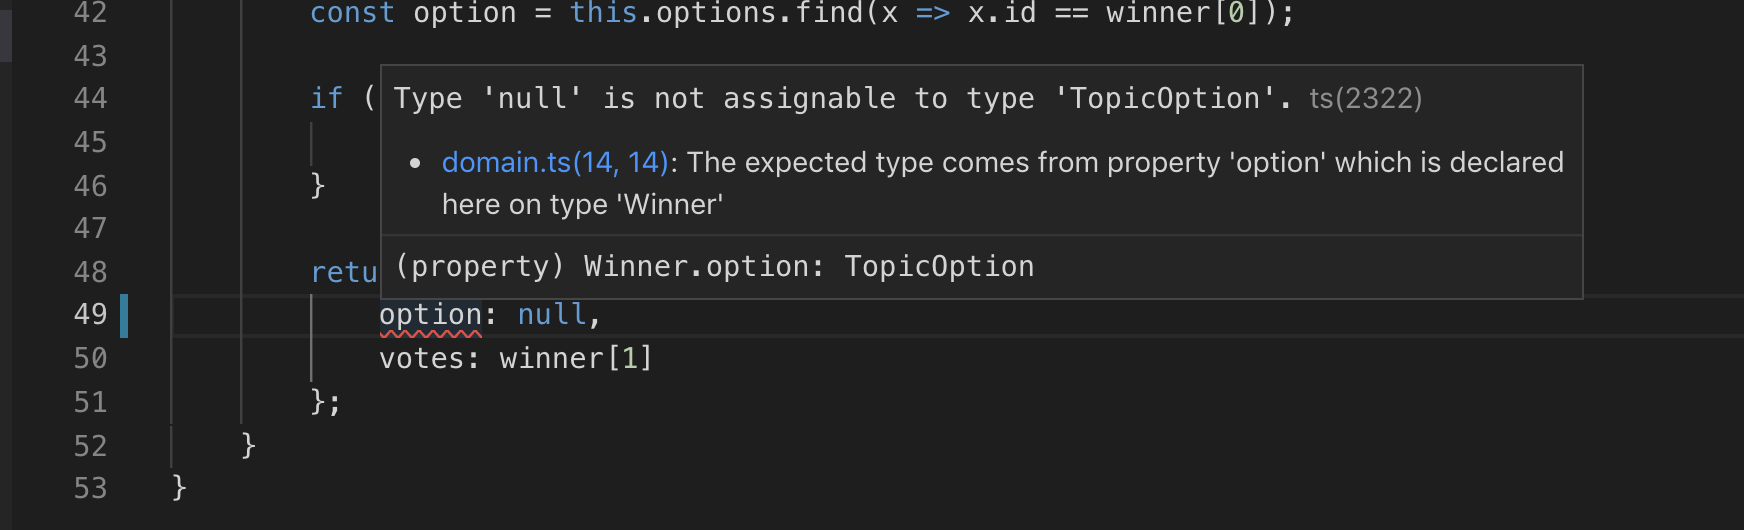 Visual Studio Code: error for assigning null to option